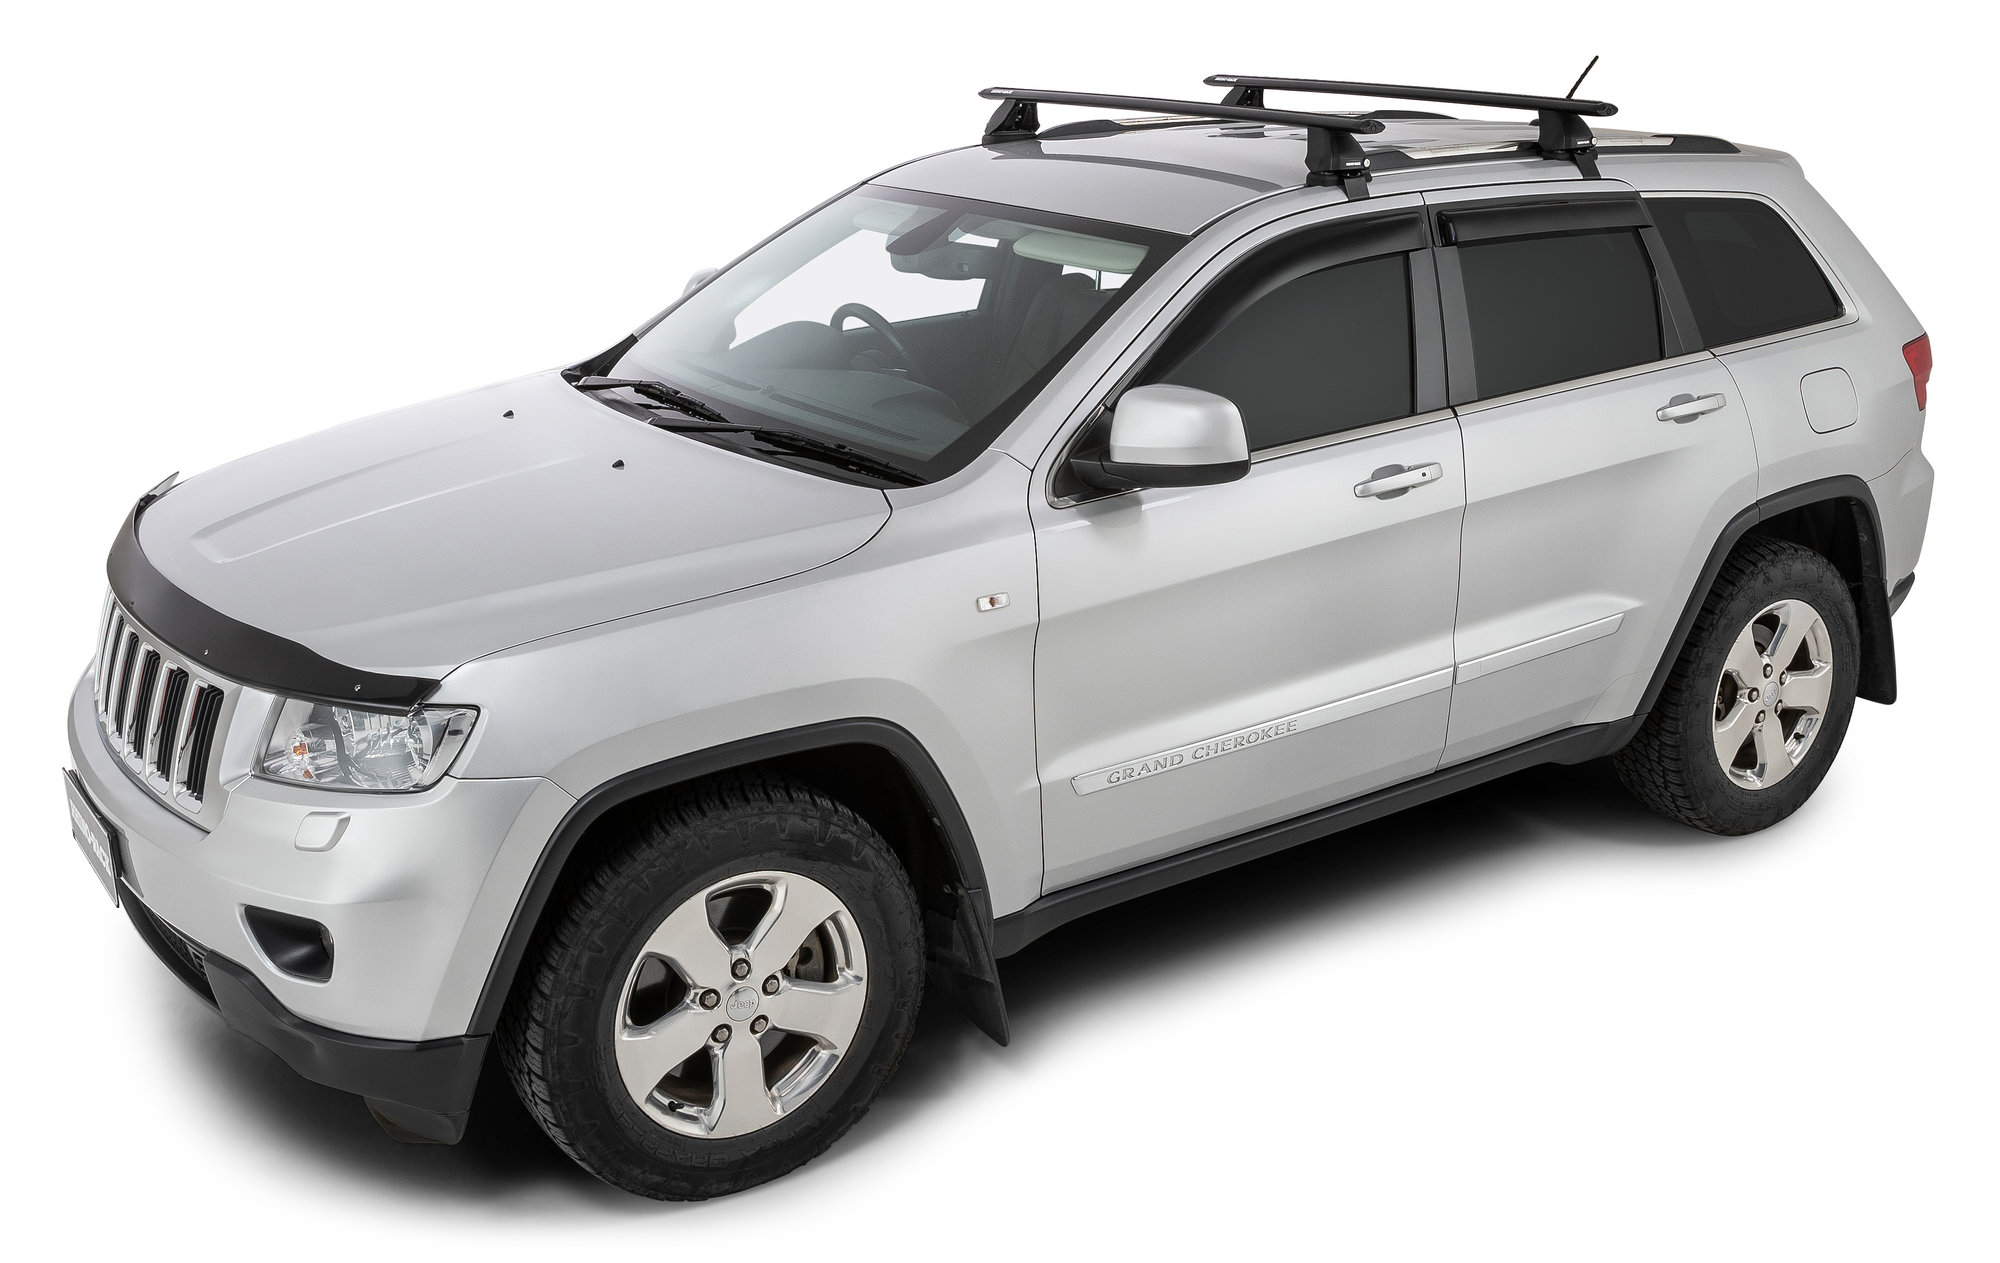 rhino rack vortex 2500 roof rack system for 11 18 jeep grand cherokee wk2 with factory plastic rails